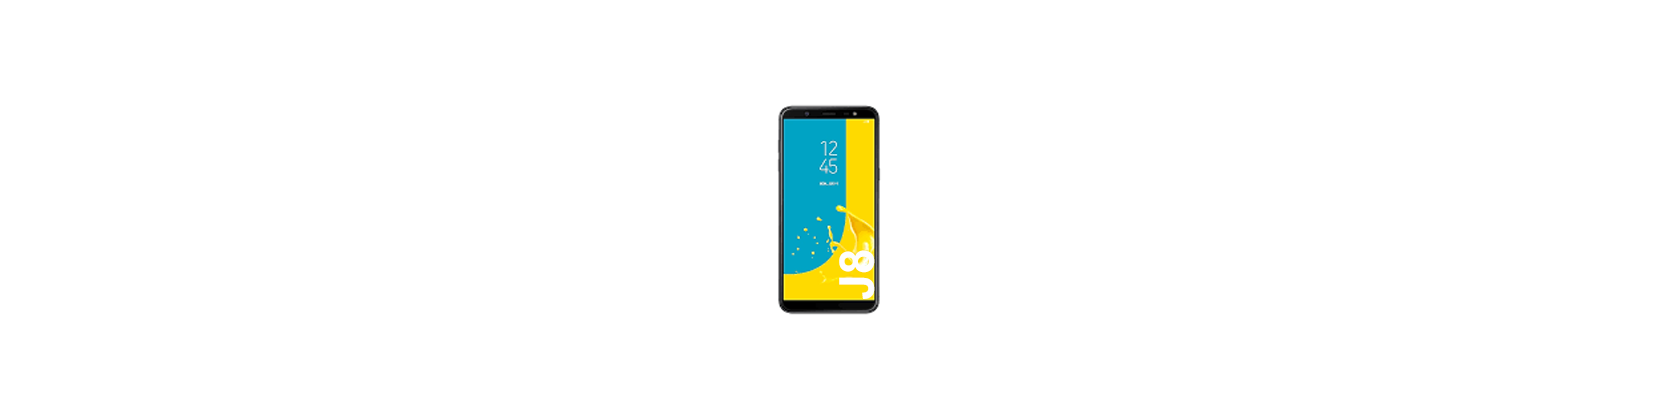 Samsung J8 J810 Components & Accessories ✅